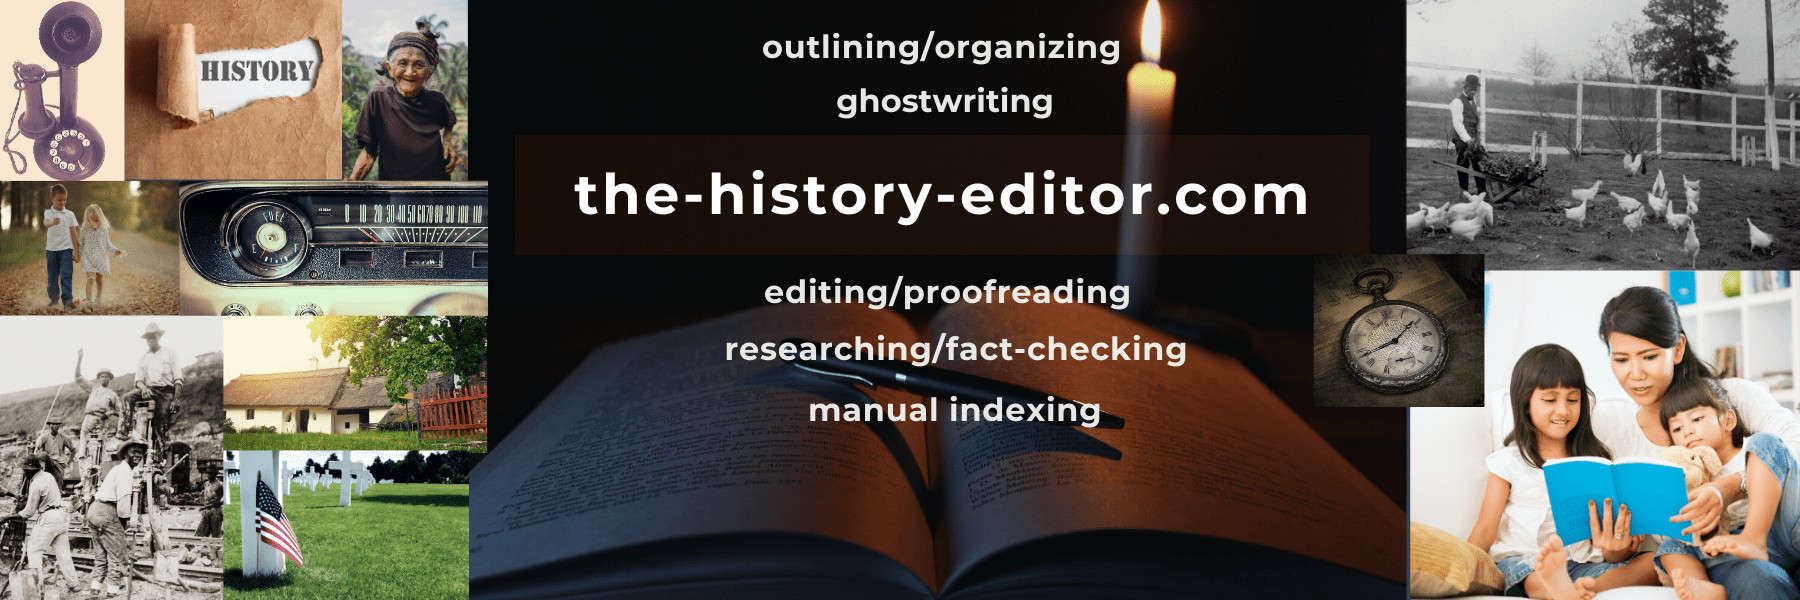 Thank you for visiting the-history-editor, a division of the-freelance-editor, for help with history-related outlining/organizing, ghostwriting, editing/proofreading, researching/fact-checking, and manual indexing.